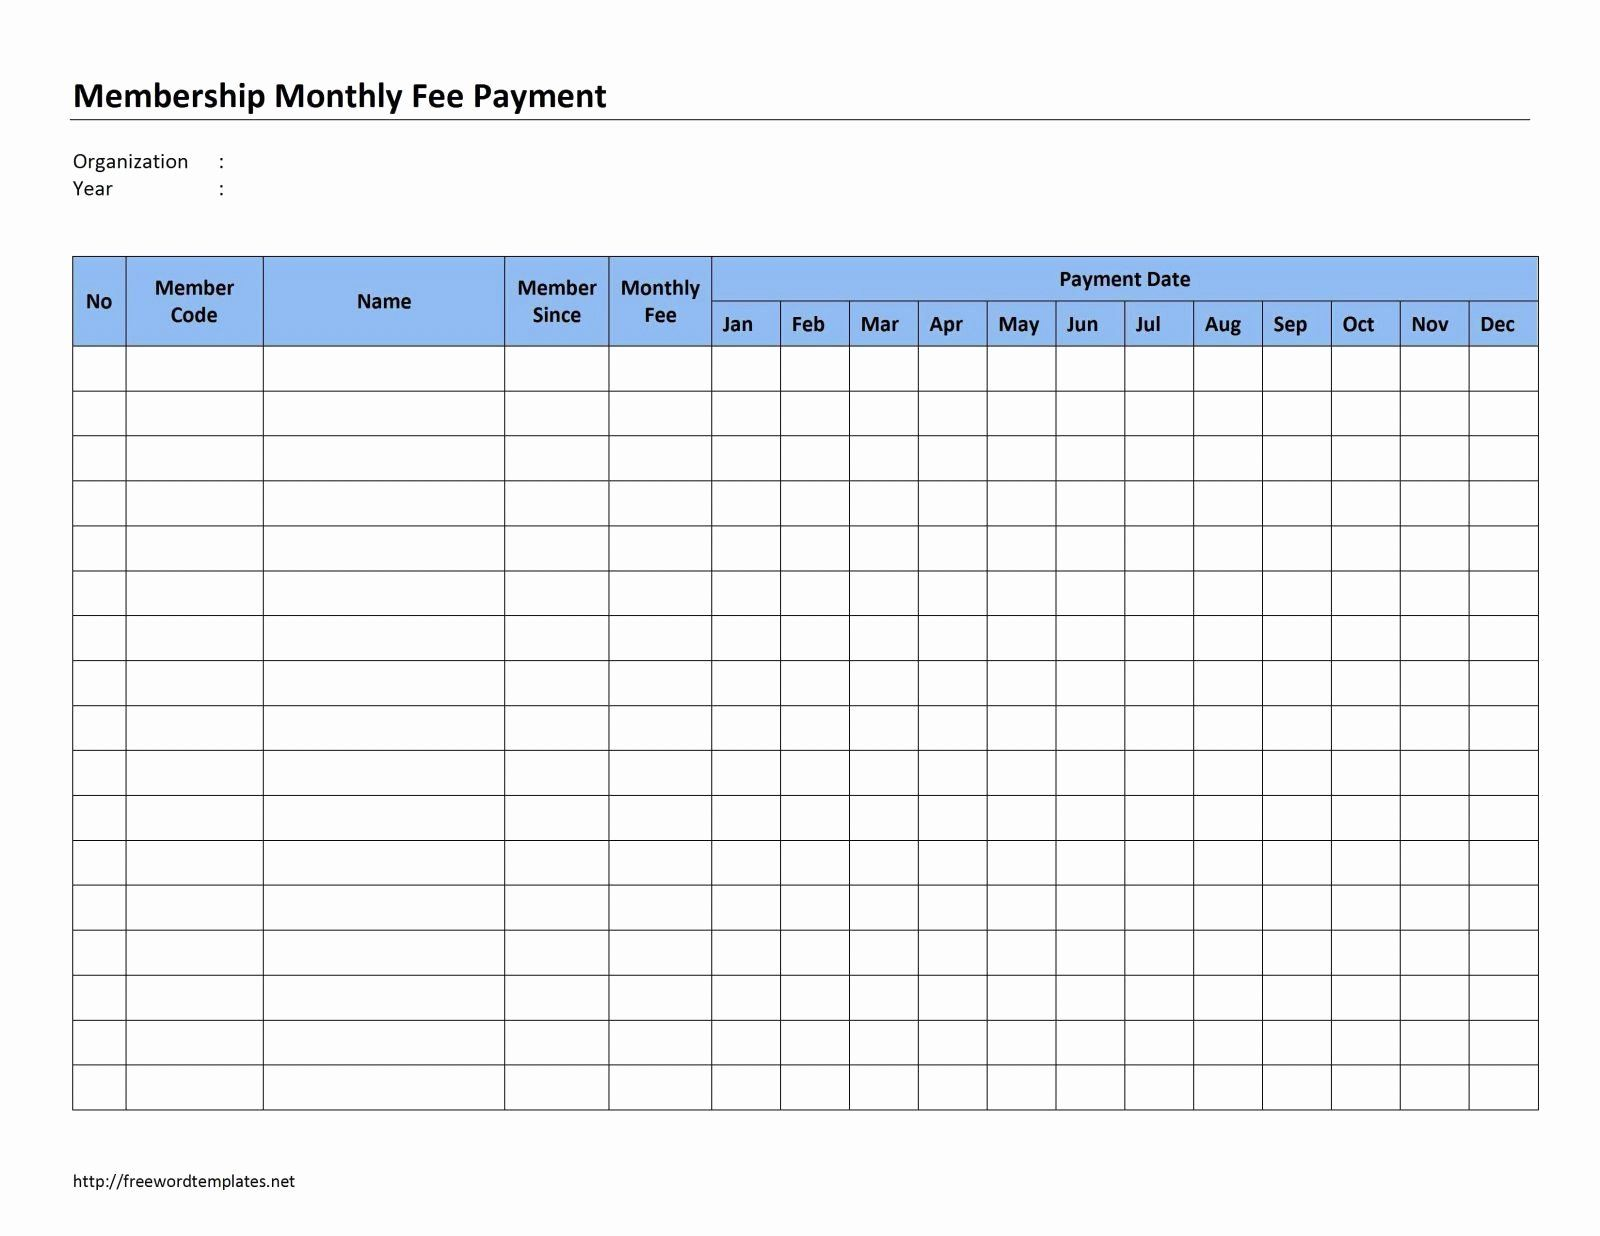 Payment Schedule Template Excel Inspirational Spreadsheet Bill Pay Excel Credit Card Utilization Tracking Paying Bills Spreadsheet Template Schedule Template